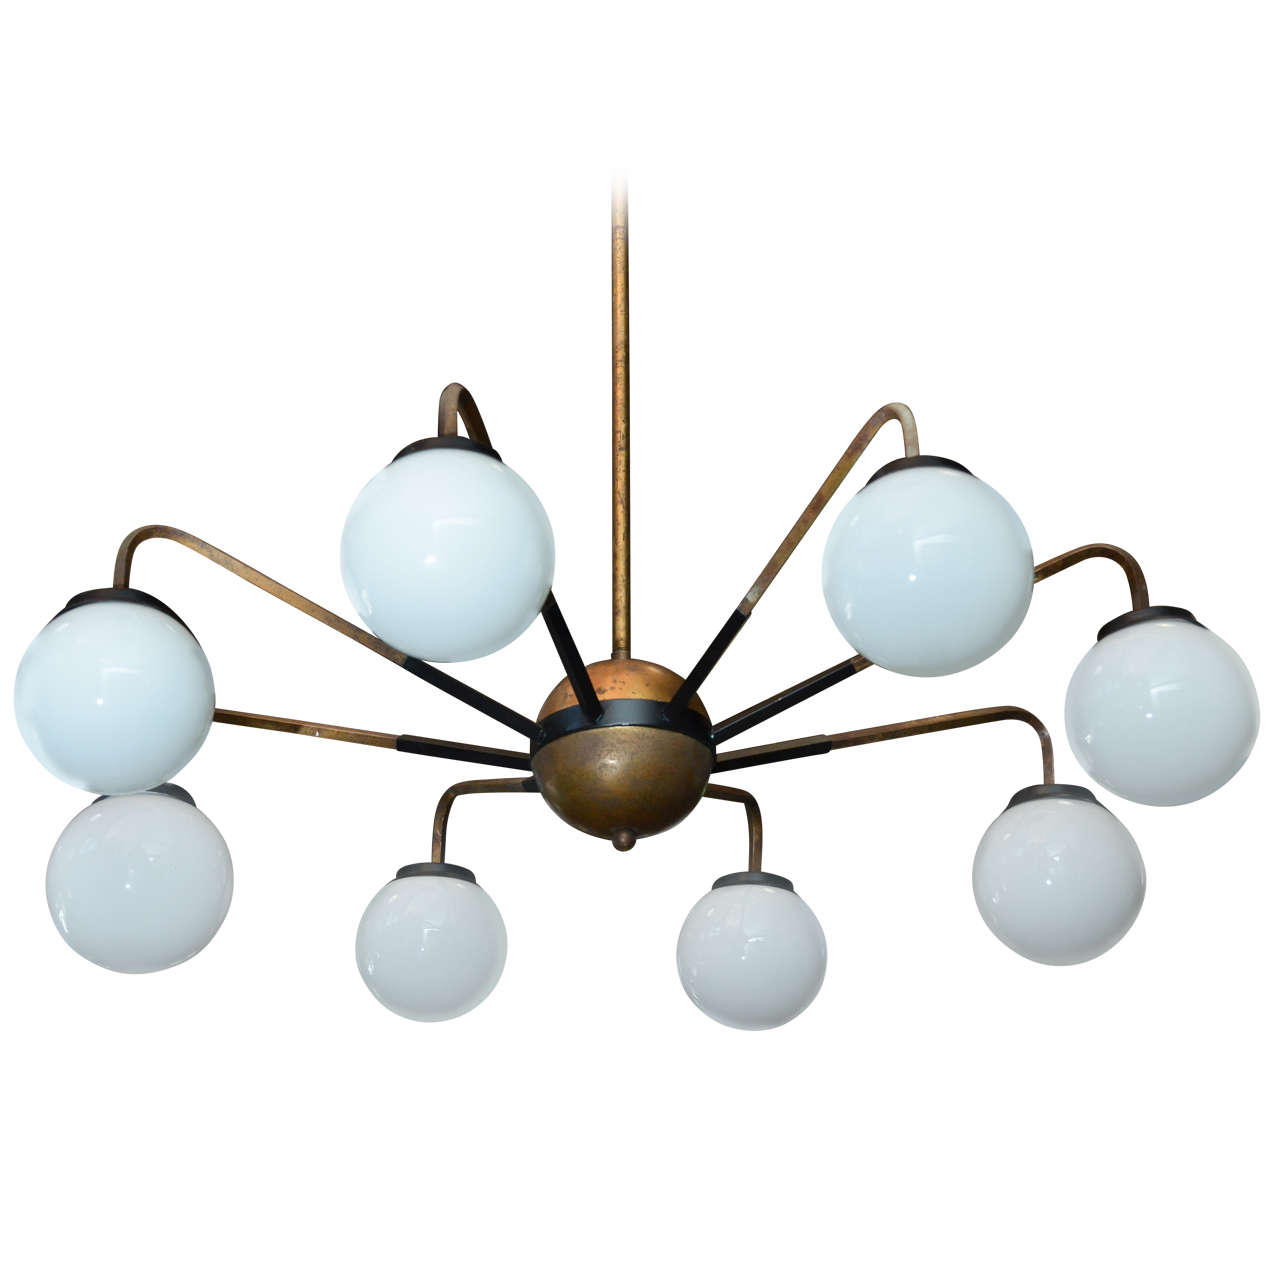 Italian mid century chandelier in plated aluminum with opaque glass italian mid century chandelier in plated aluminum with opaque glass globes for sale aloadofball